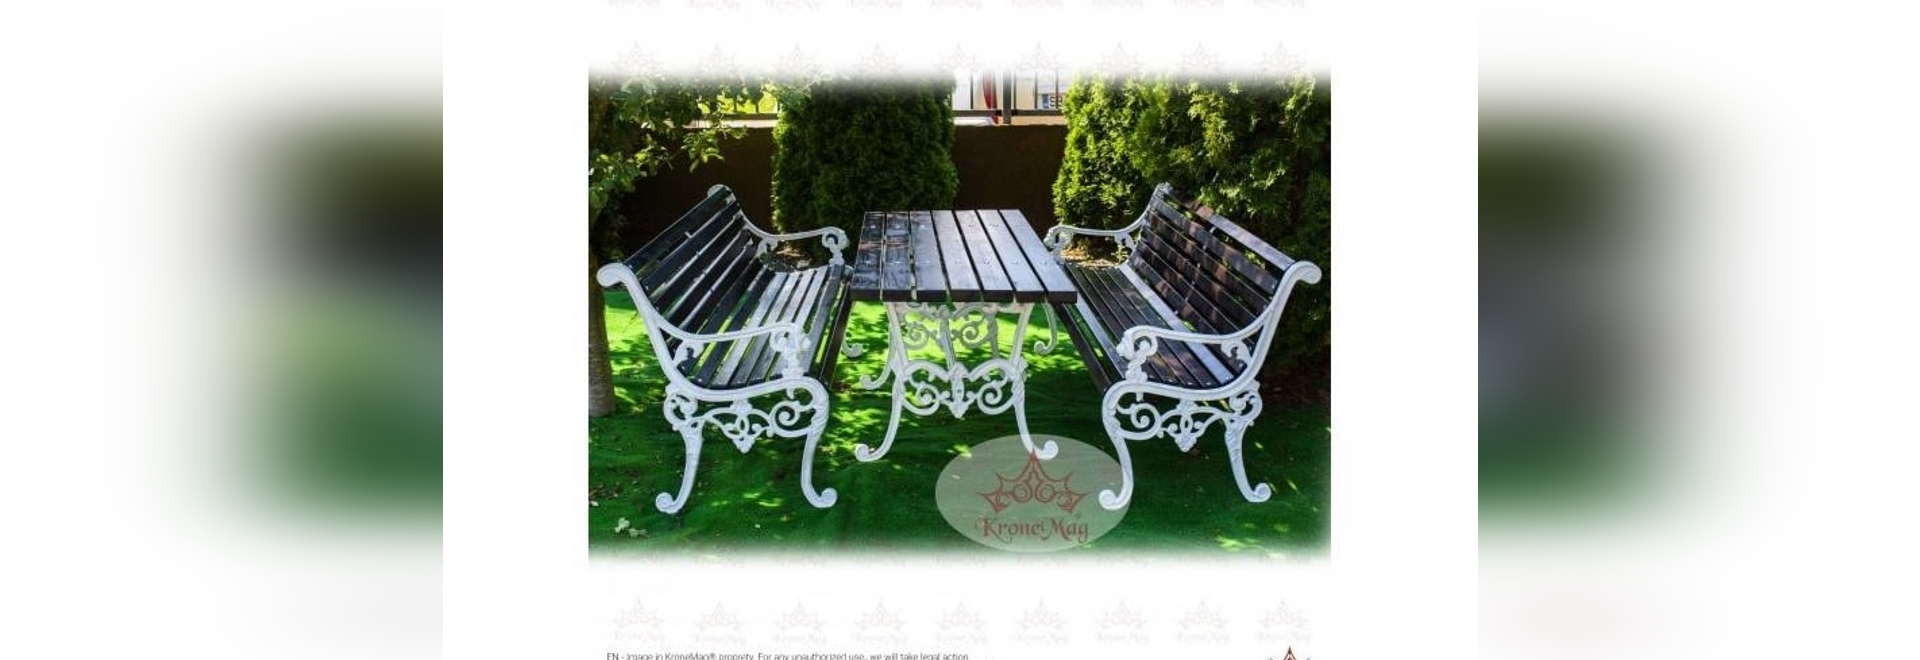 https://www.kronemag.eu/cast-iron-garden-furniture-set-lyon-2